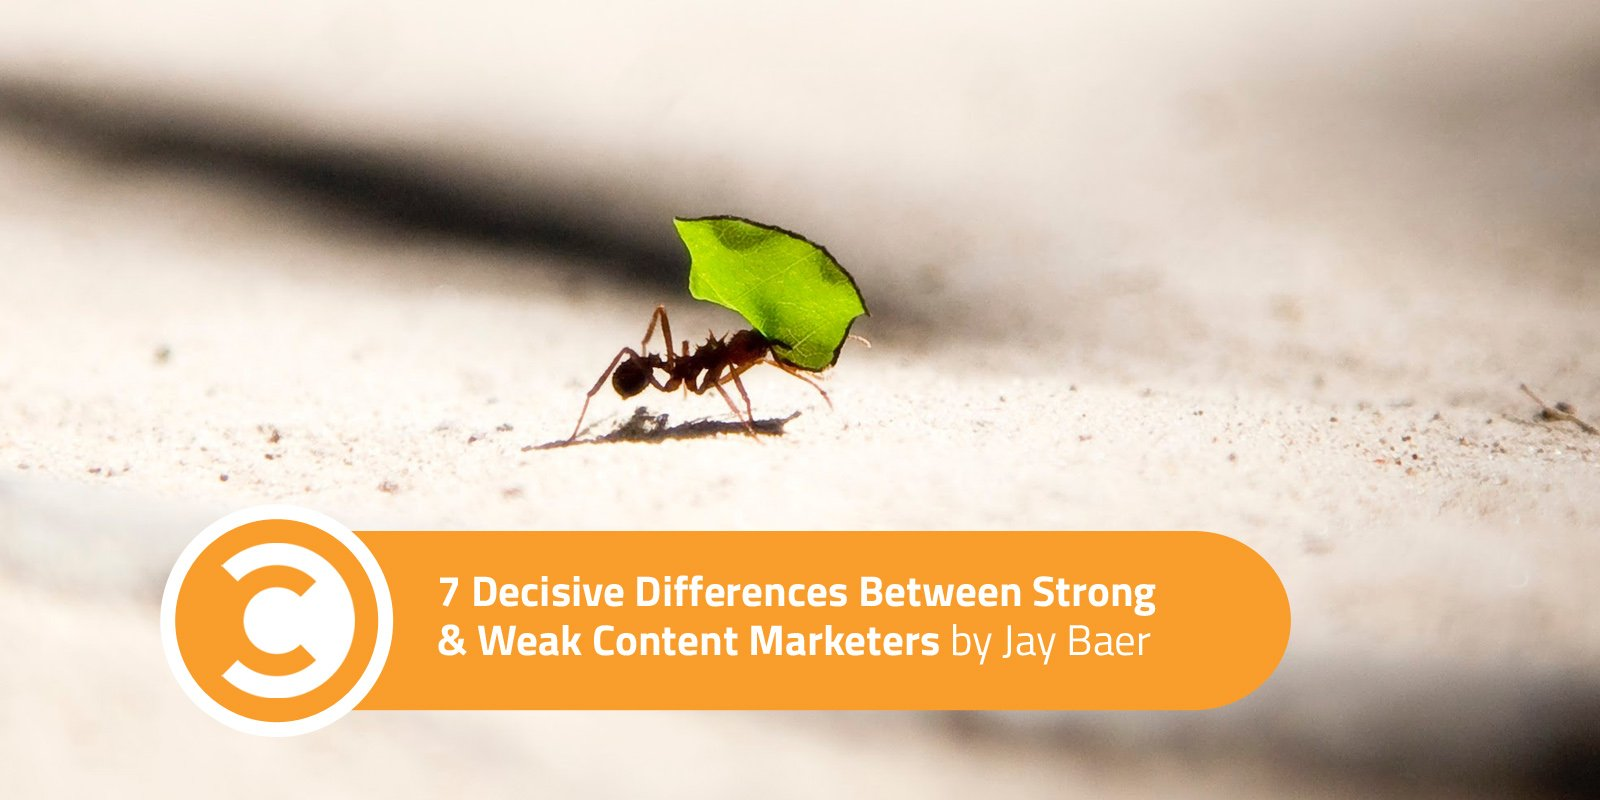 7 Decisive Differences Between Strong and Weak Content Marketers